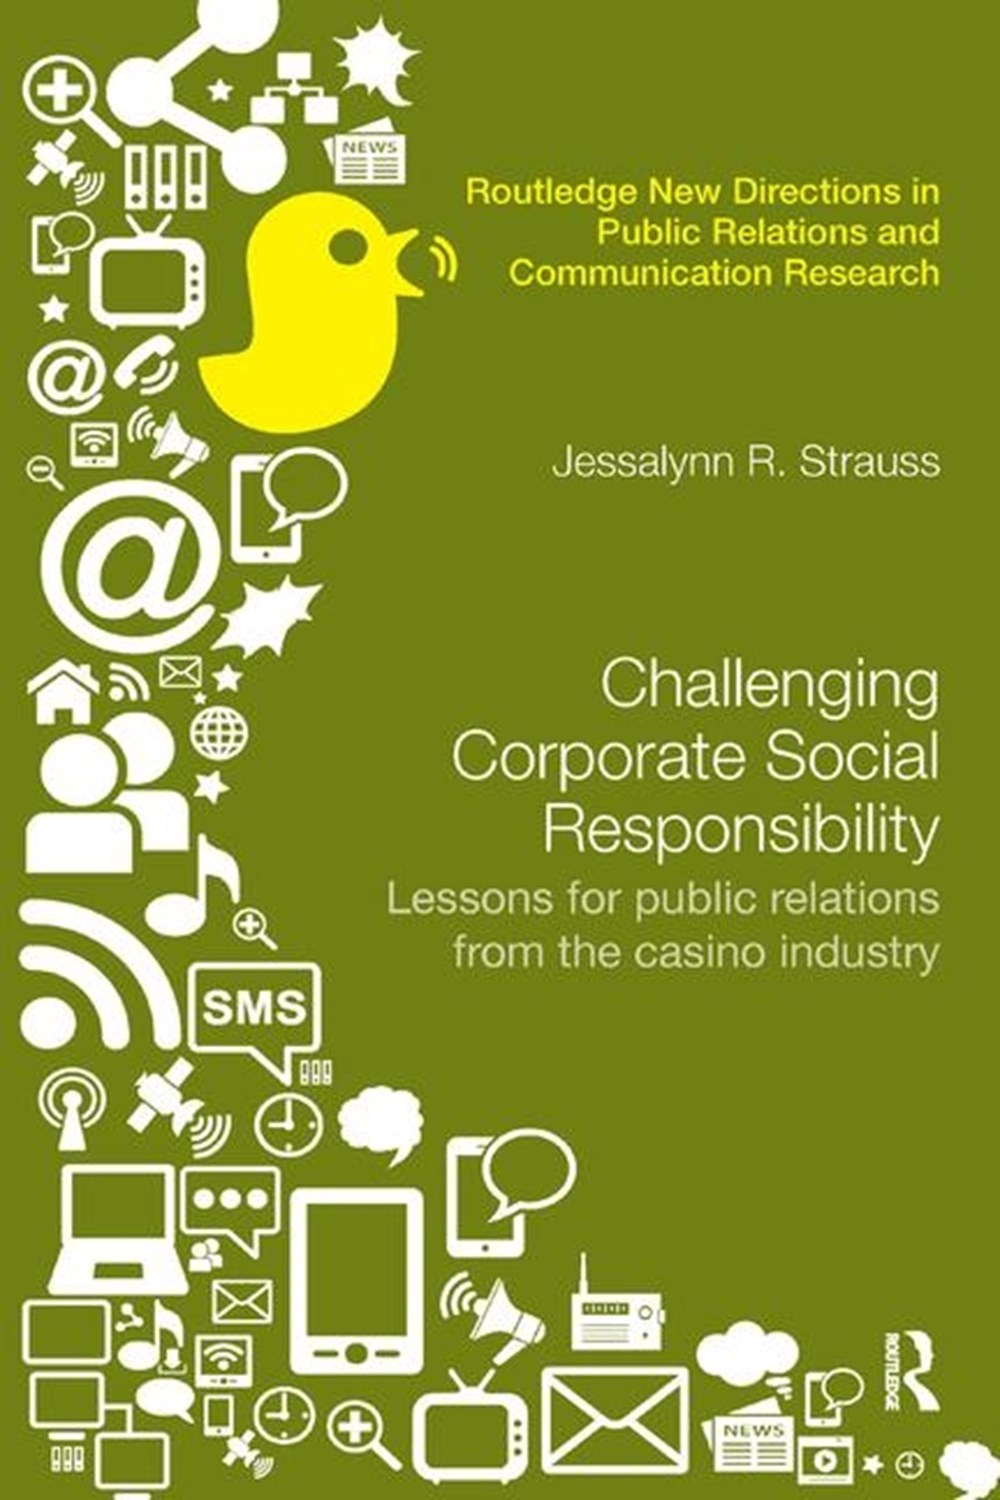 Challenging Corporate Social Responsibility Lessons for Public Relations from the Casino Industry